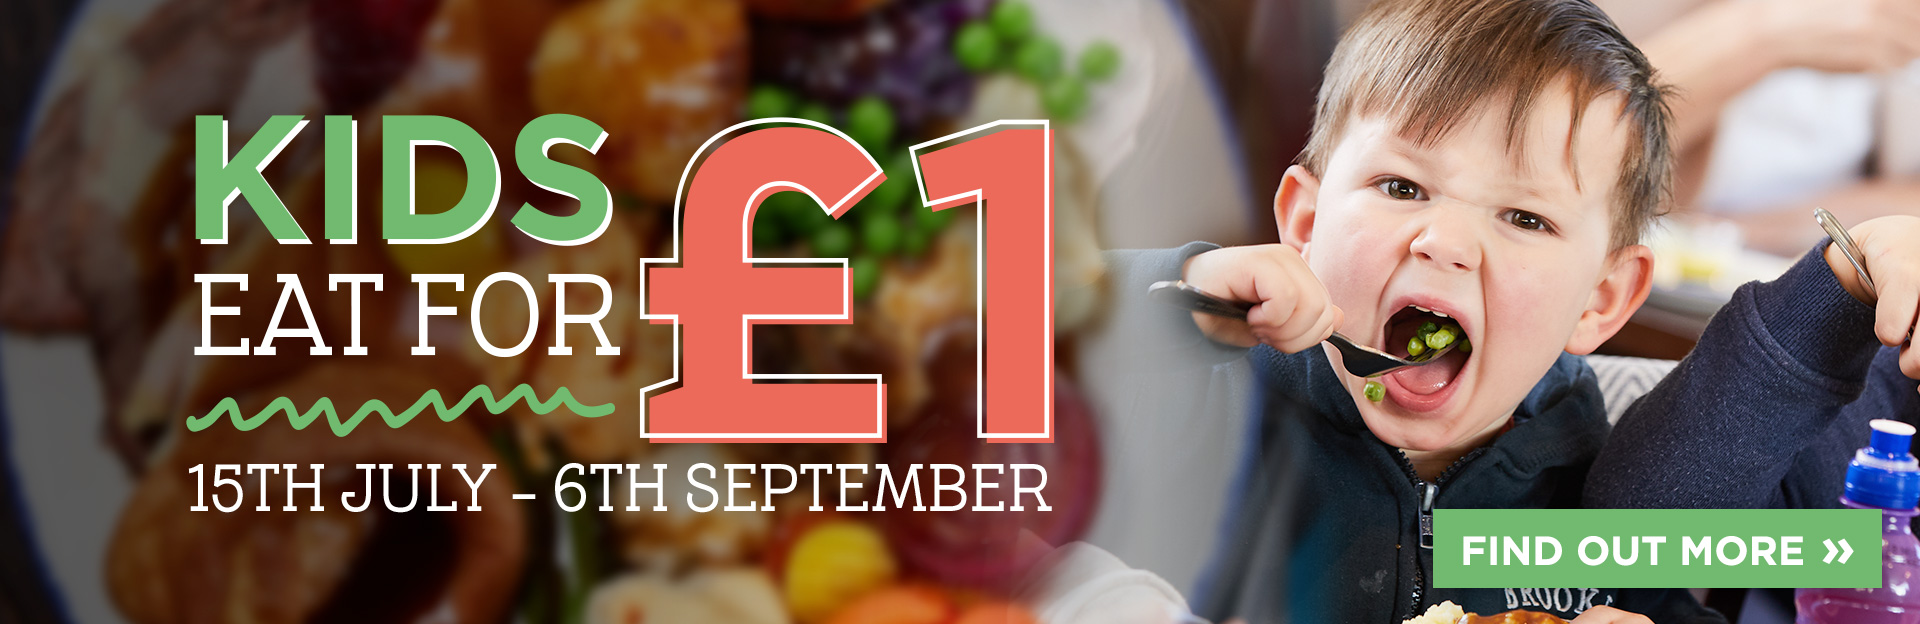 Kids Eat for £1 at The Cock and Crown